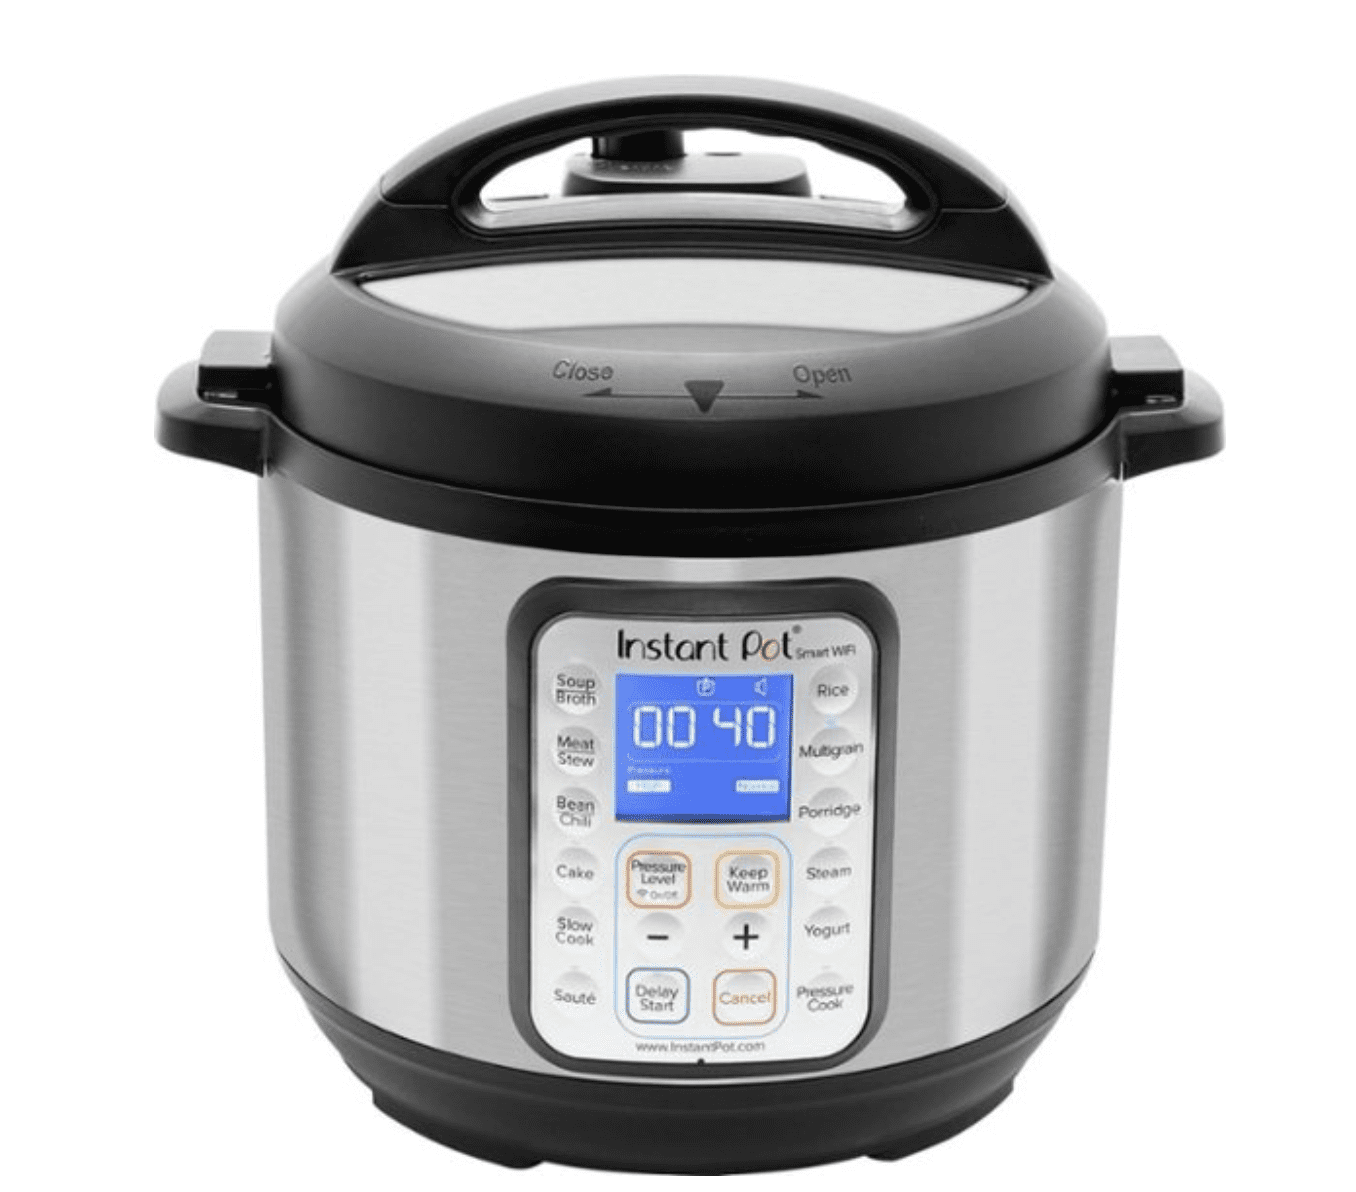 Instant Pot – Smart Wifi 6 Qt Pressure cooker for .99